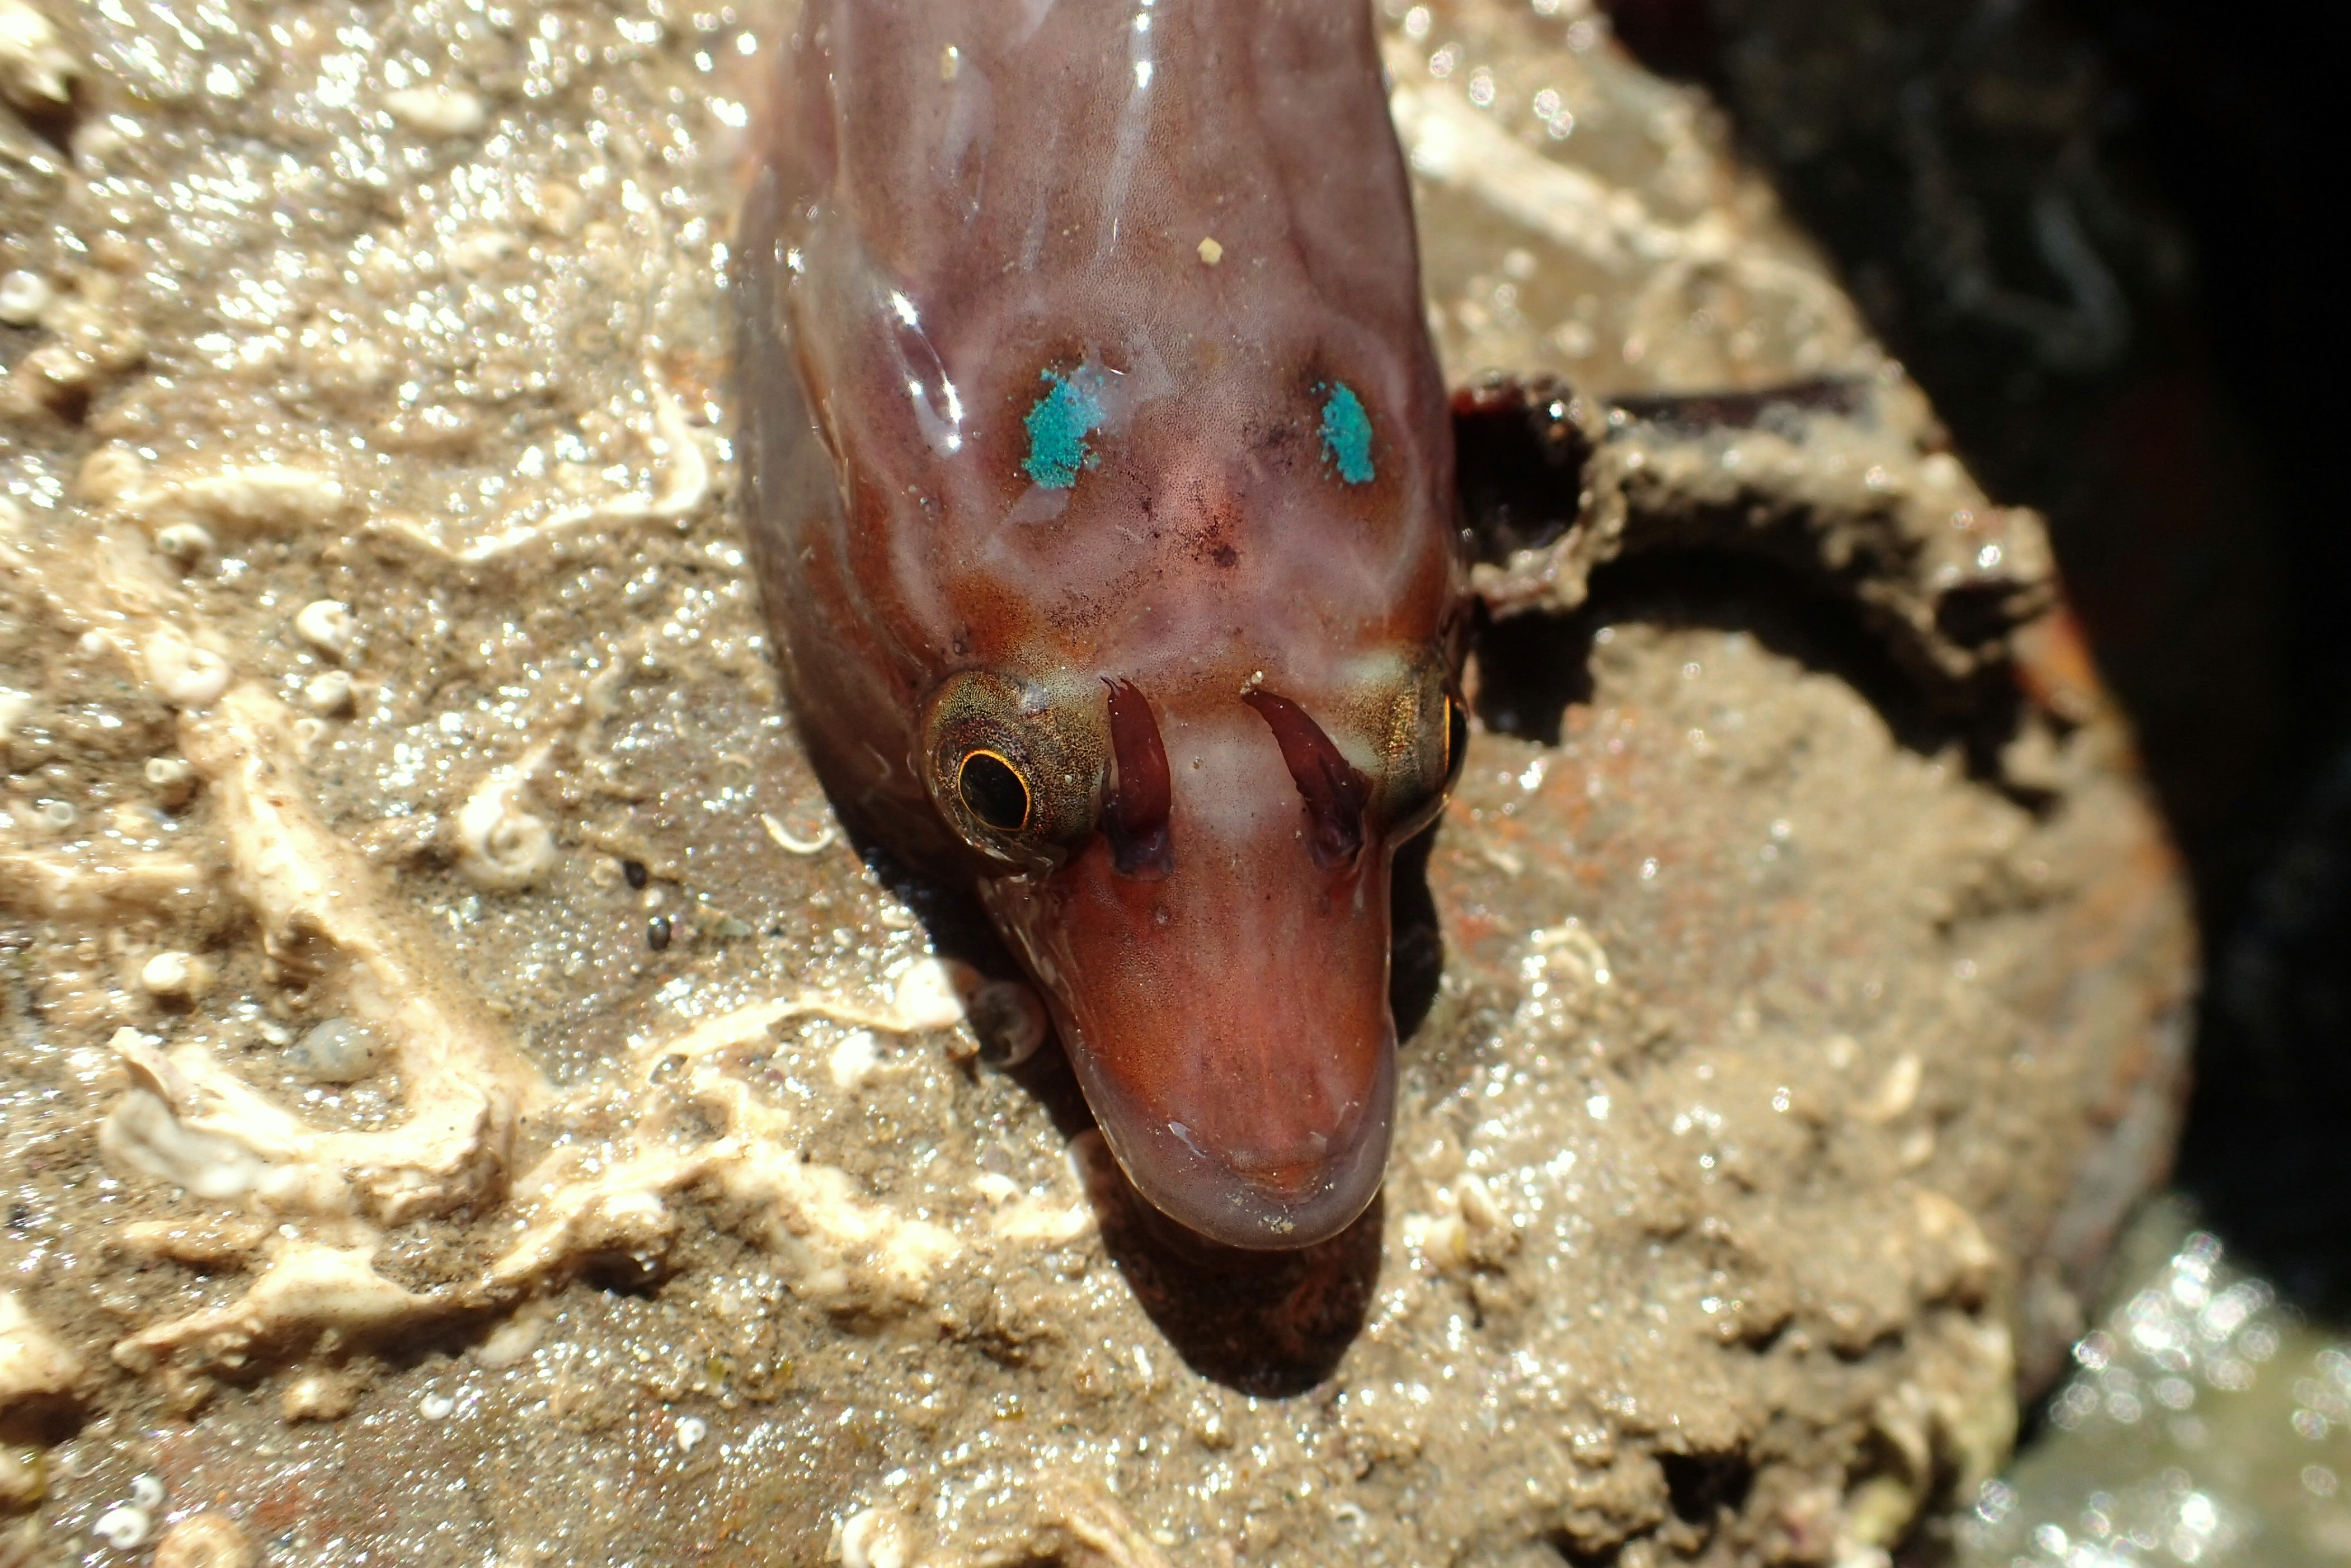 An adult Cornish clingfish showing the typical beaky nose, antenna by the eyes and blue patches on the head.